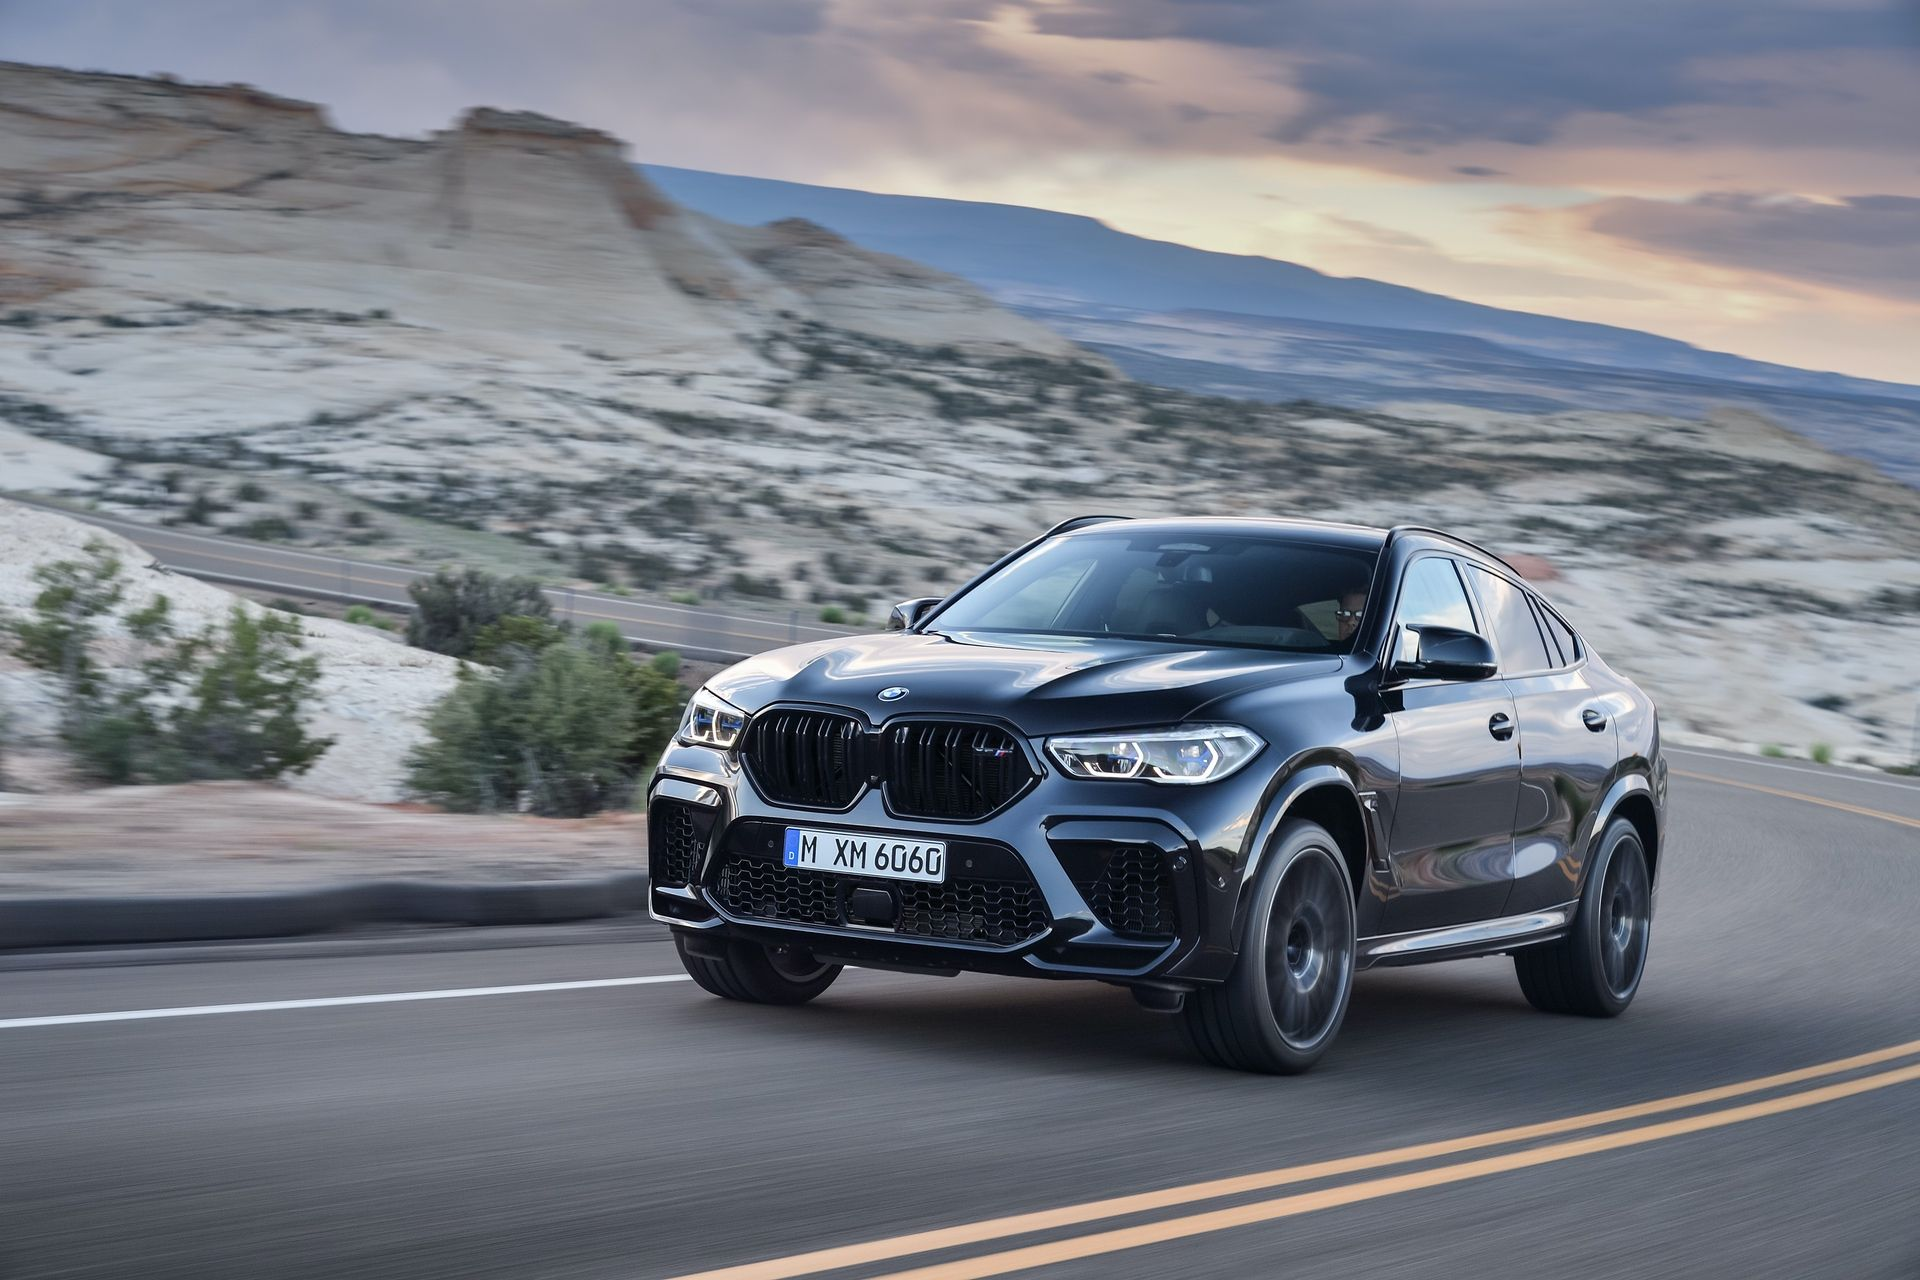 Bmw X6 M Is Here To Take On Upcoming Audi Rs Q8 Bmw X6 Bmw X7 Bmw